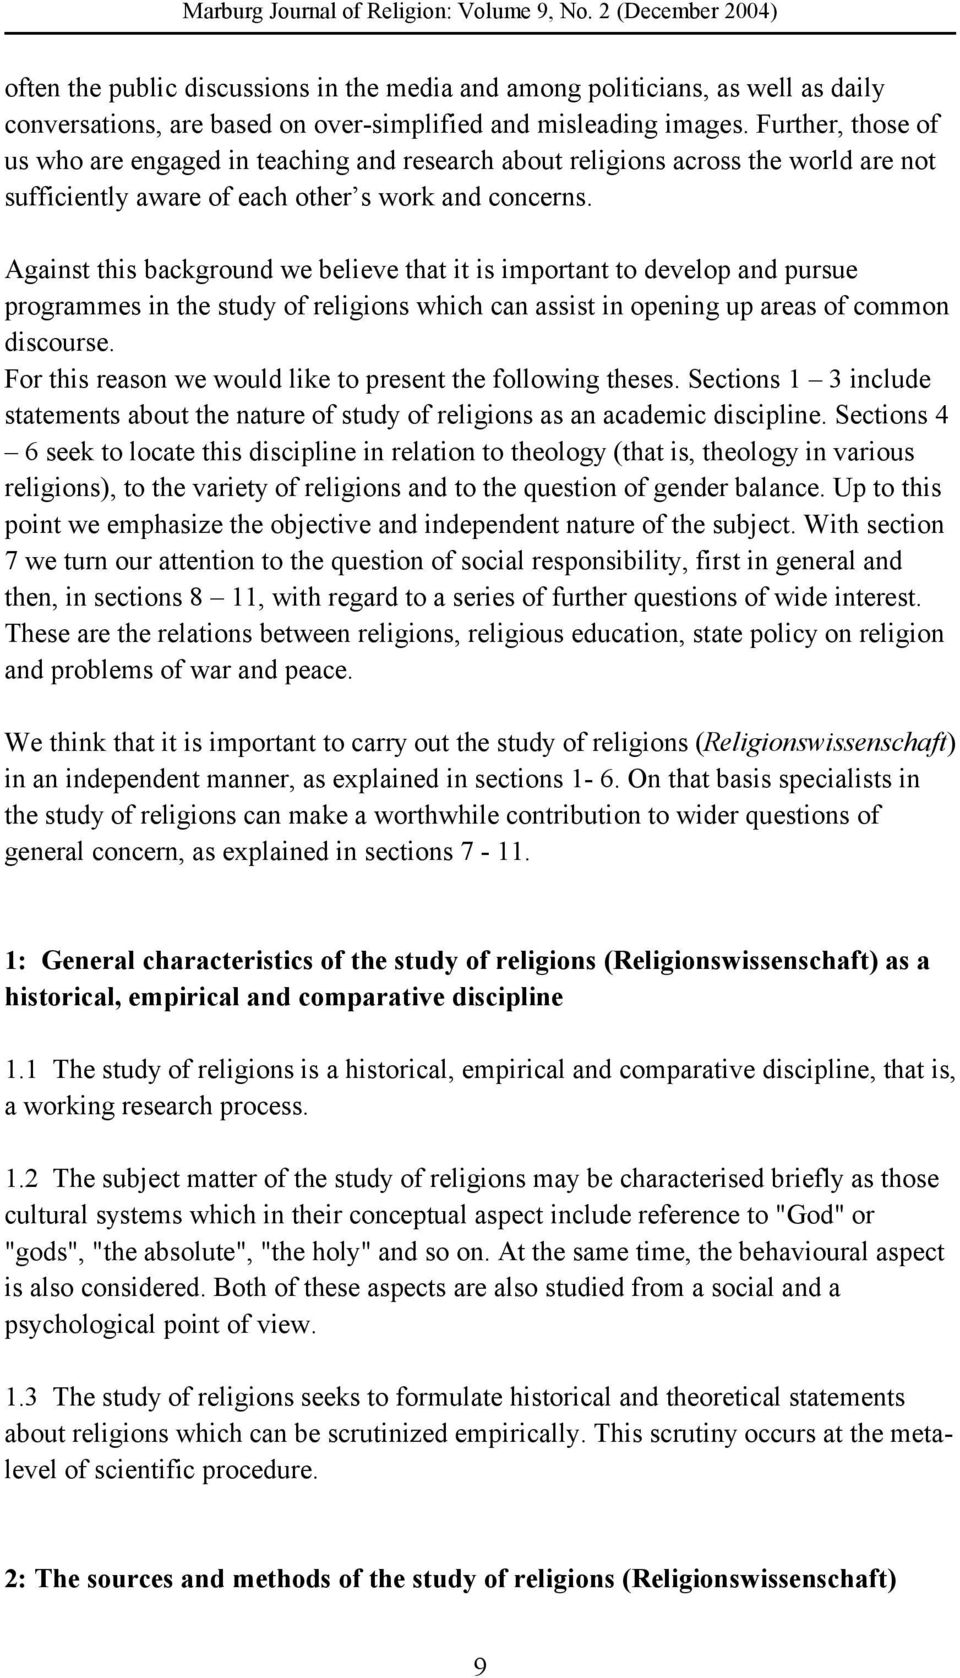 Against this background we believe that it is important to develop and pursue programmes in the study of religions which can assist in opening up areas of common discourse.